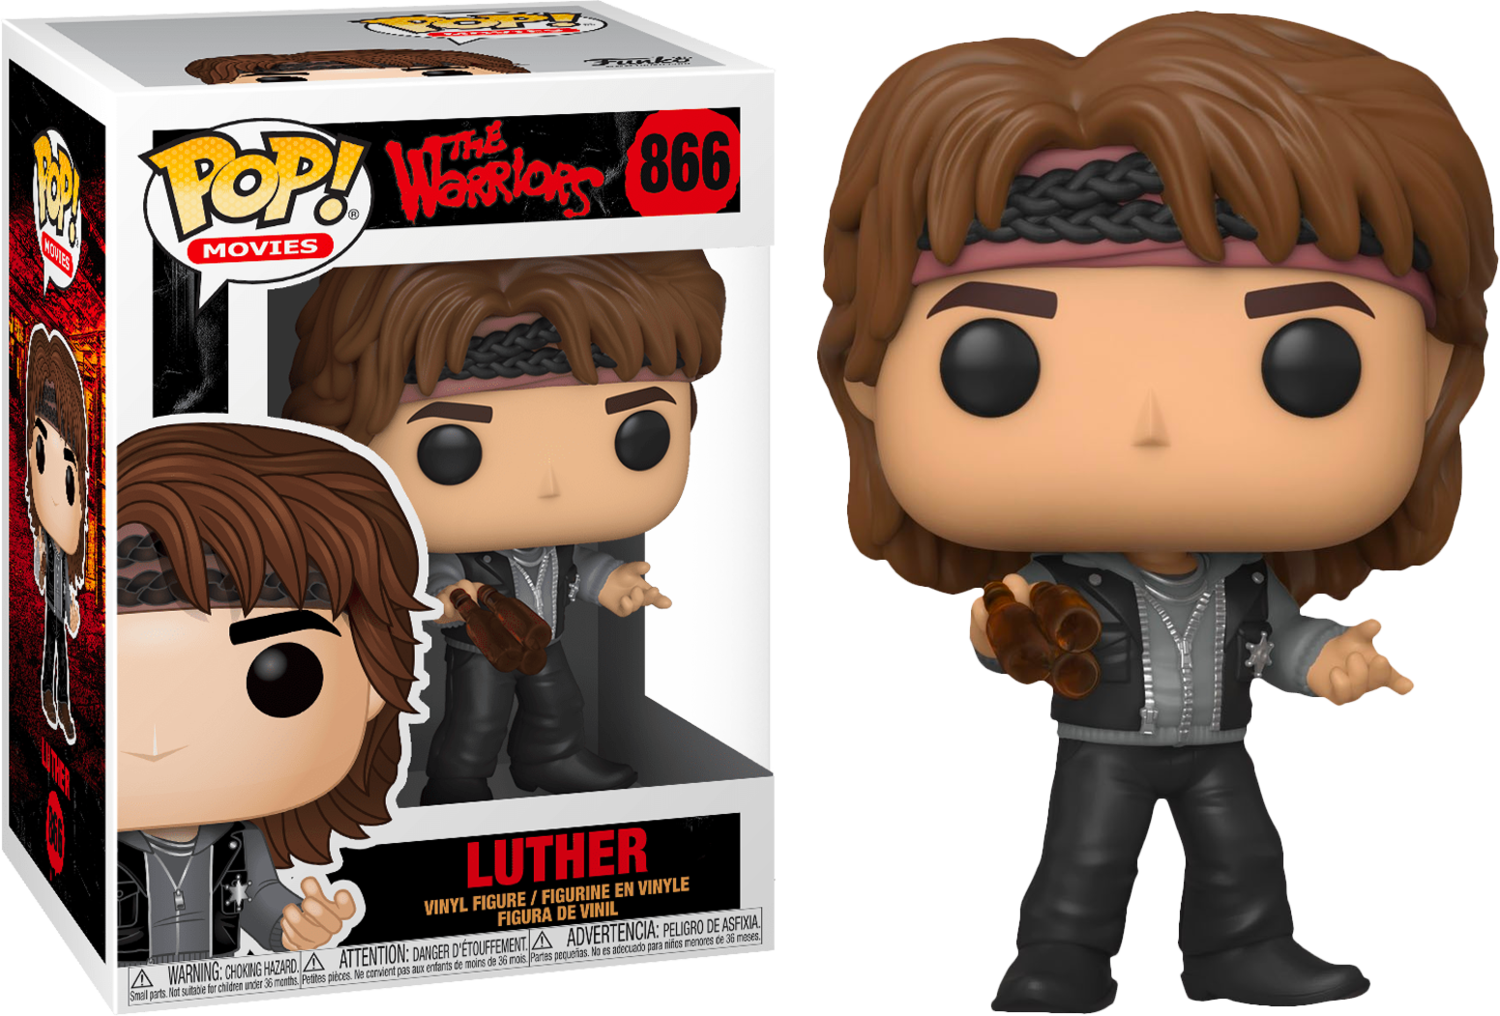 The Warriors - Luthor Pop! Vinyl Figure